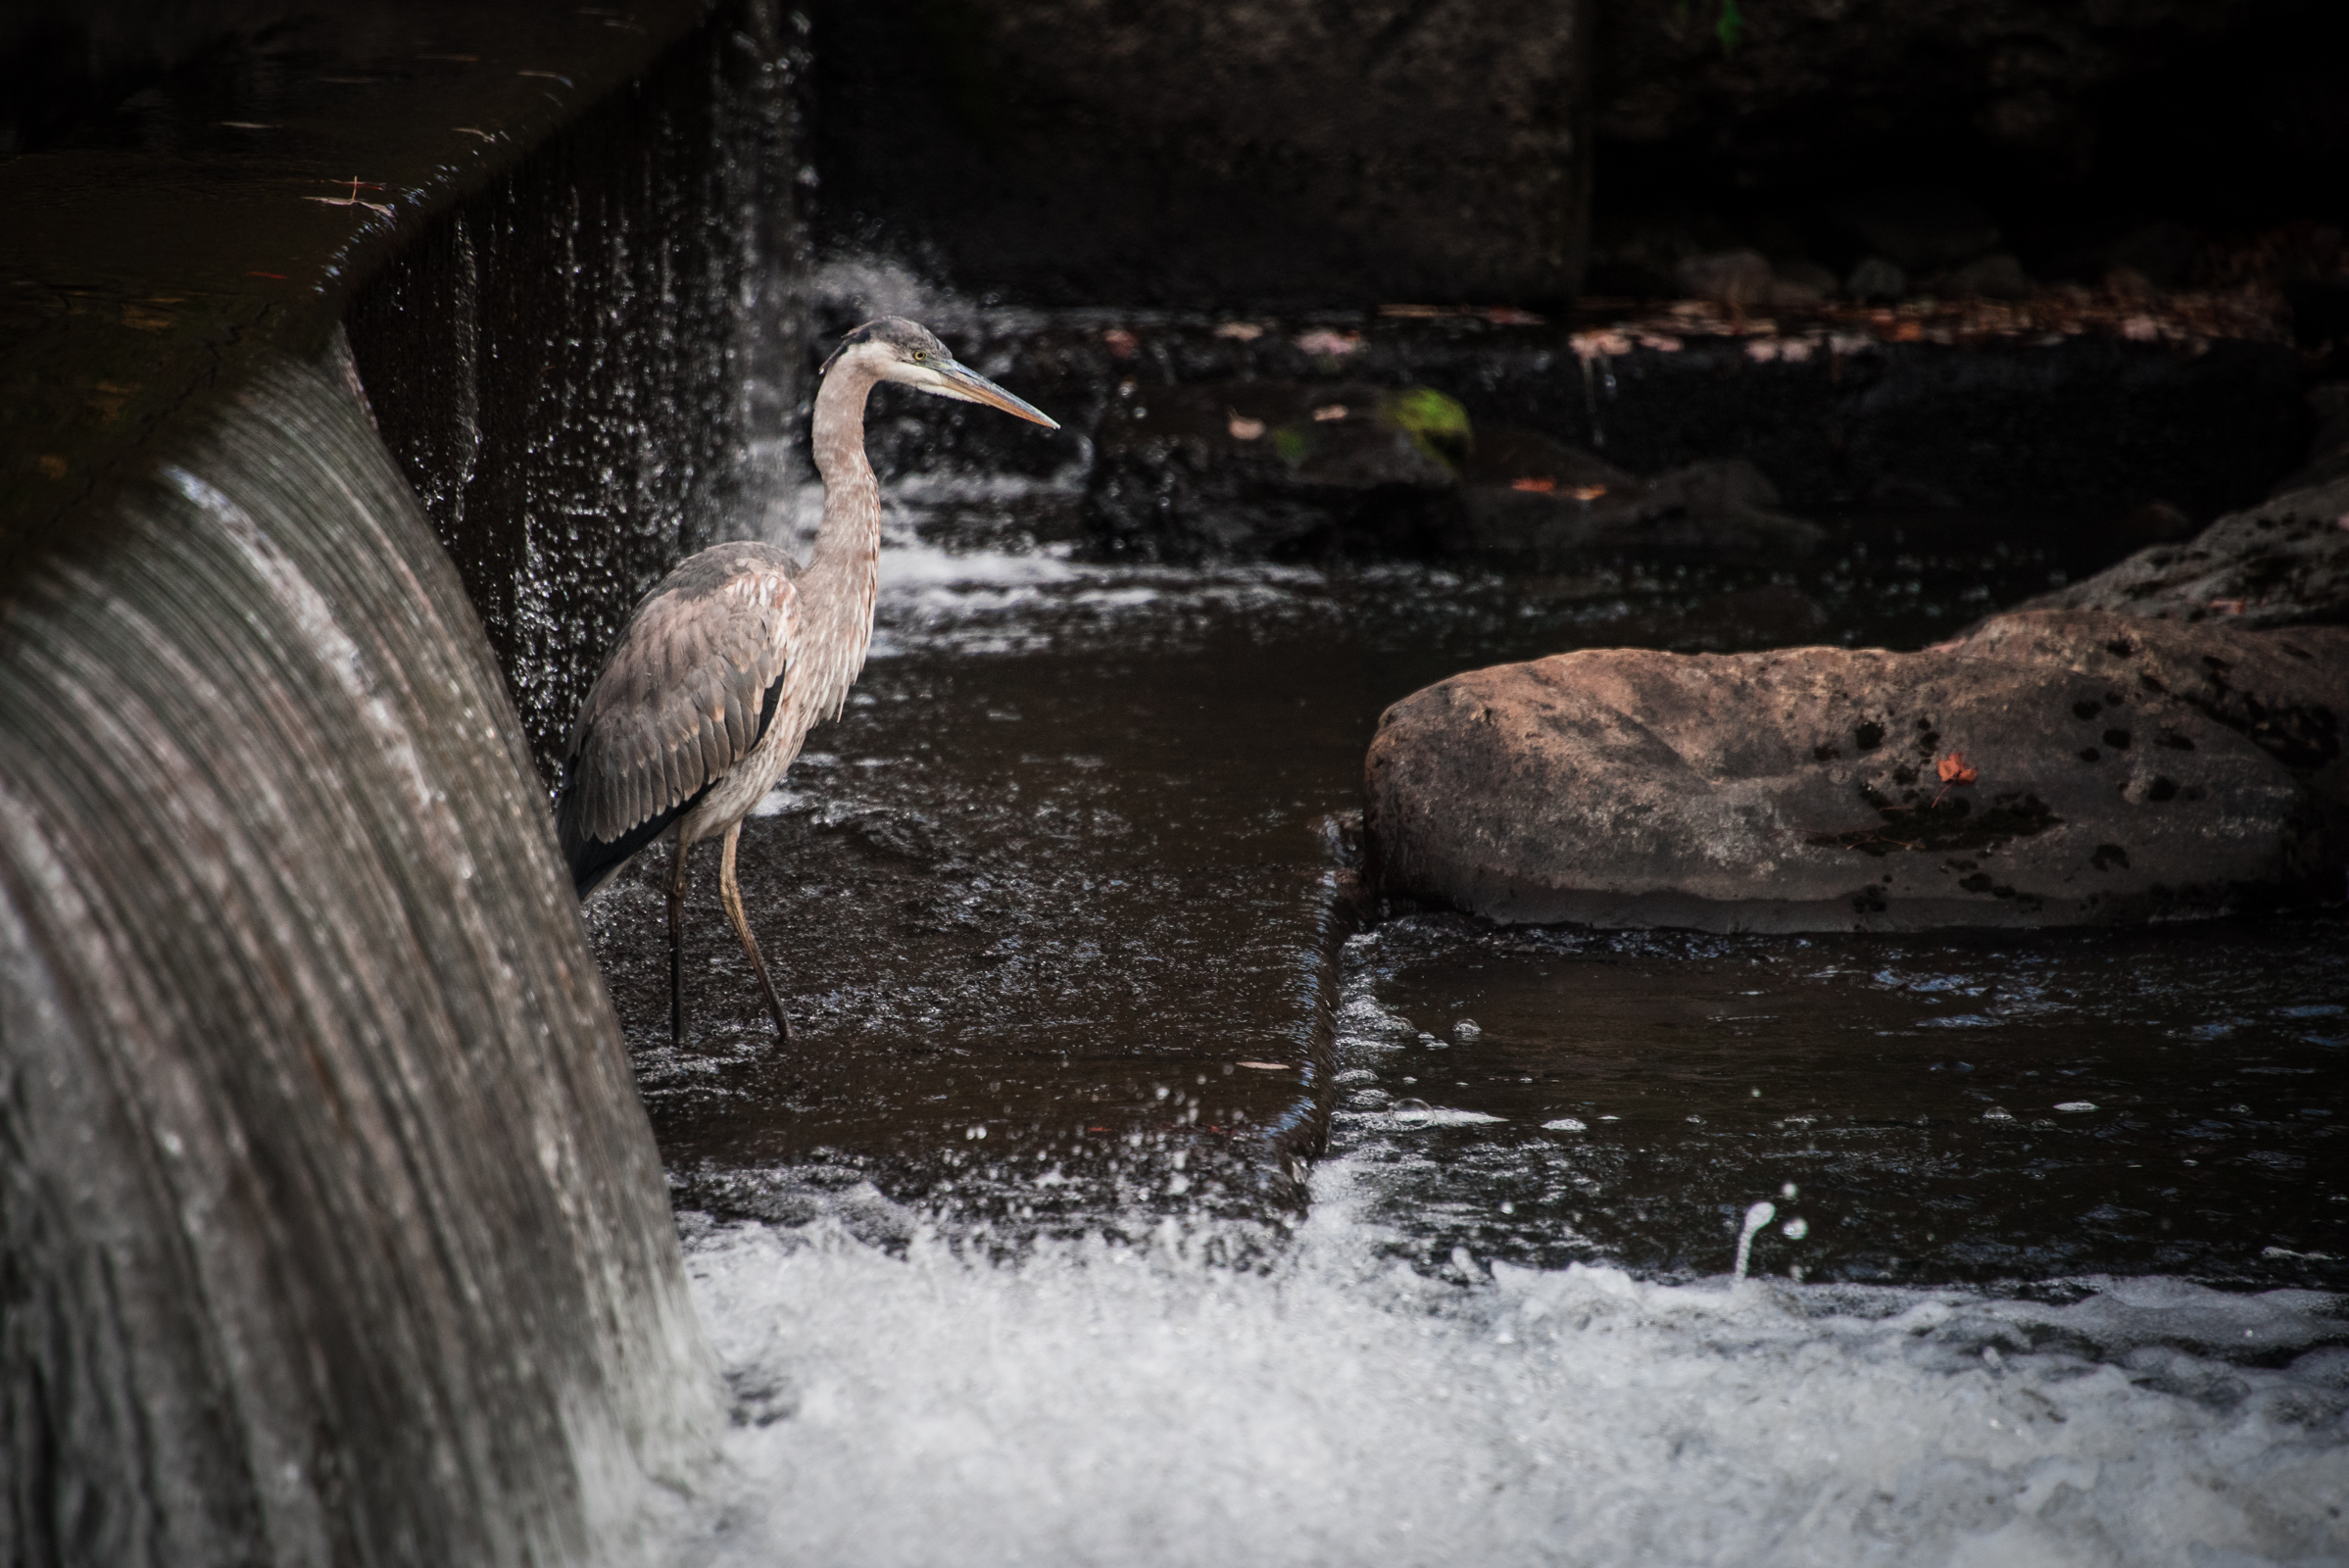 a blue heron stands in the water in vermont, photographed by jamie bannon photography.